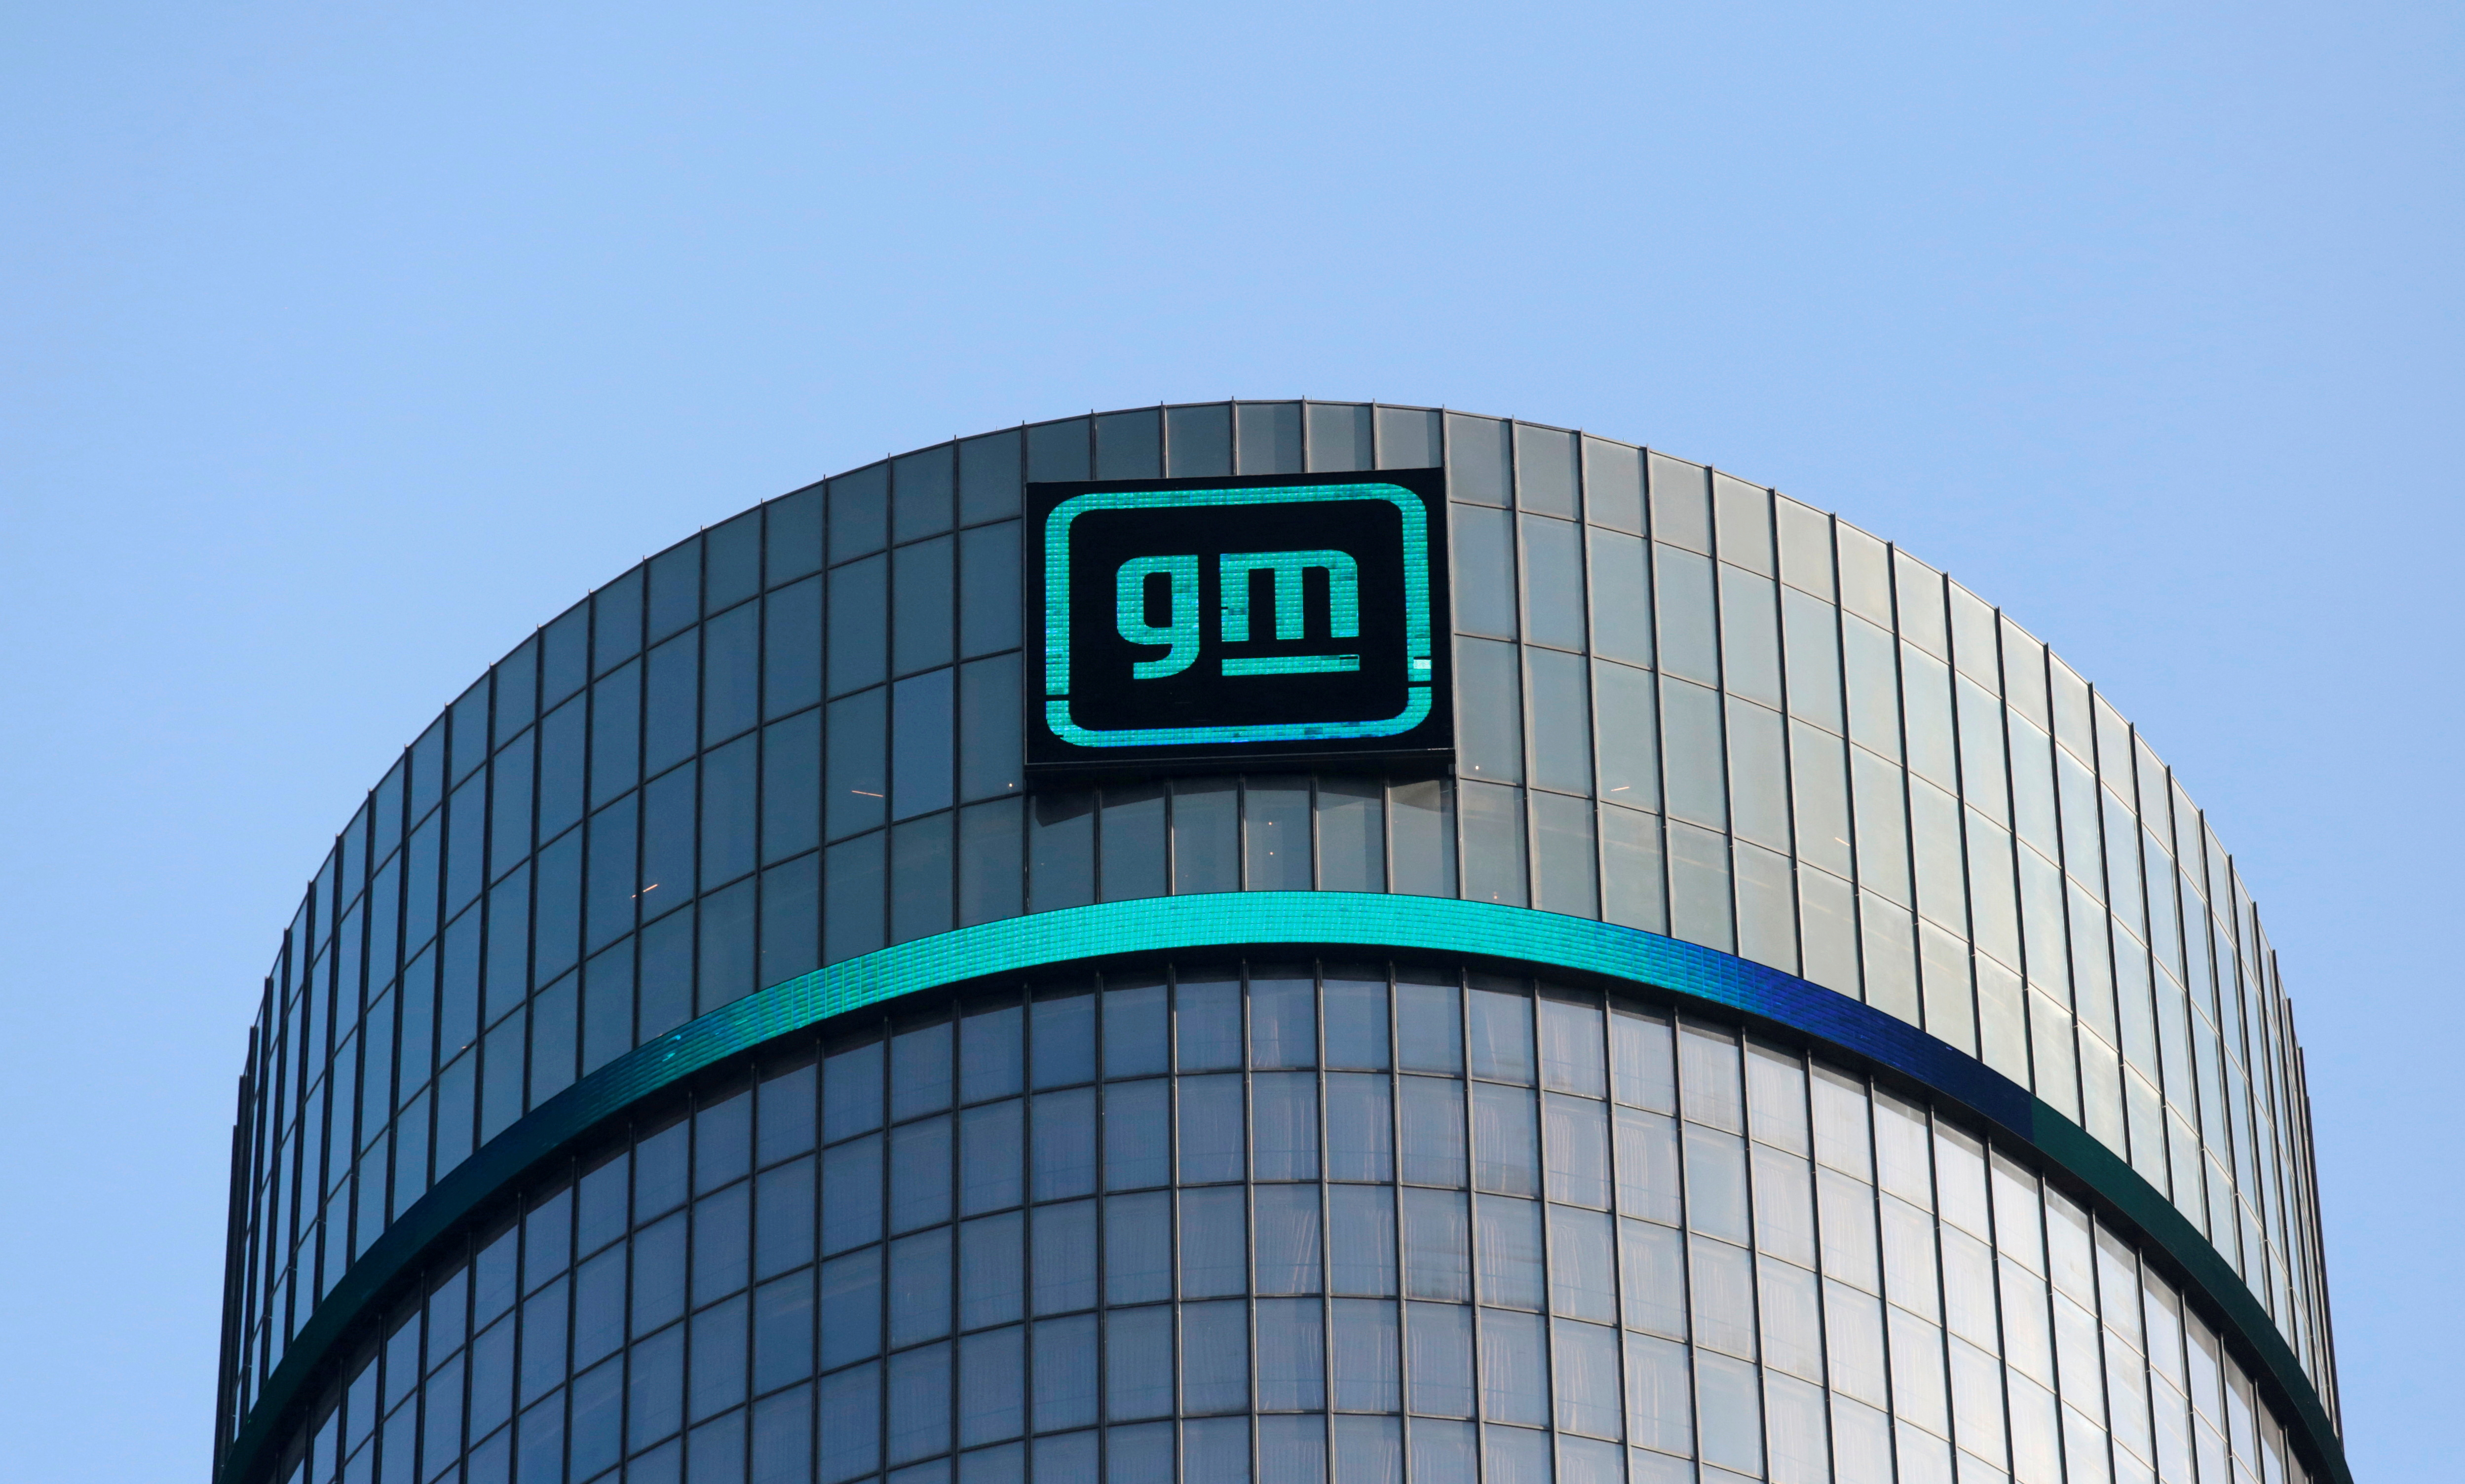 The new GM logo is seen on the facade of the General Motors headquarters in Detroit, Michigan, U.S., March 16, 2021. REUTERS/Rebecca Cook/File Photo